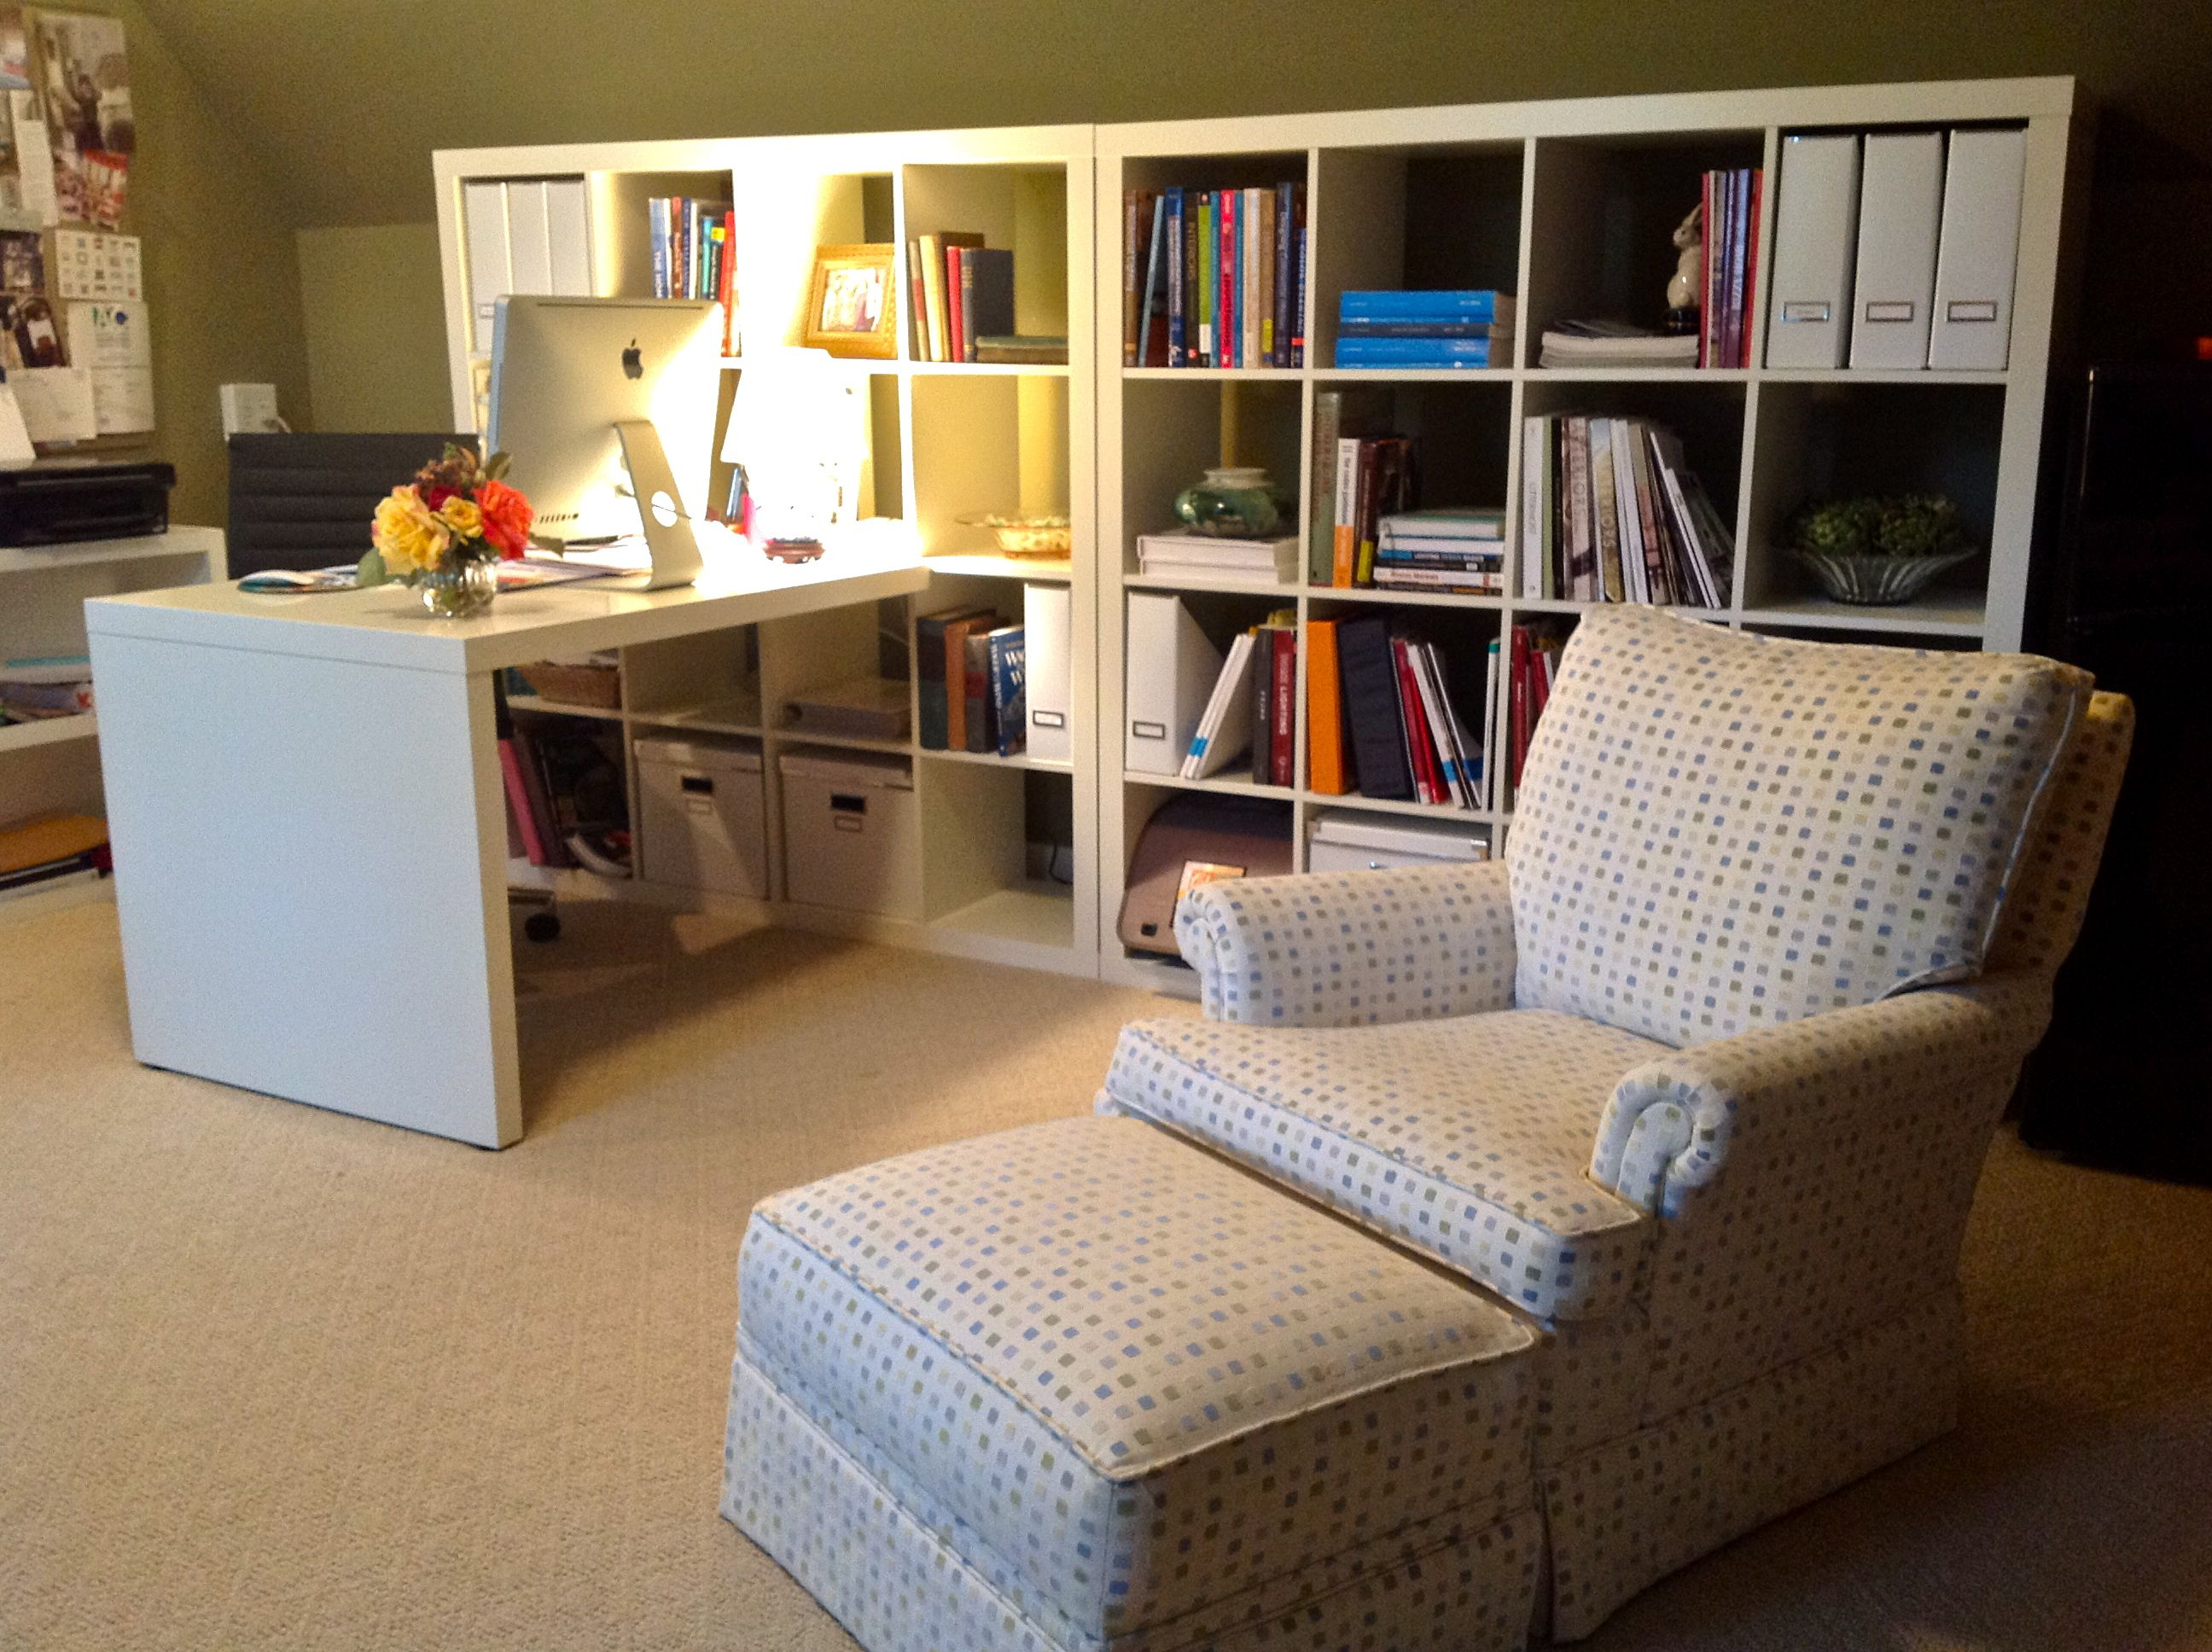 #A36D28  Desk From Ikea Home Office Pinterest Bookcases Ikea And Desks with 2592x1936 px of Most Effective Ikea Desk And Bookcase 19362592 wallpaper @ avoidforclosure.info